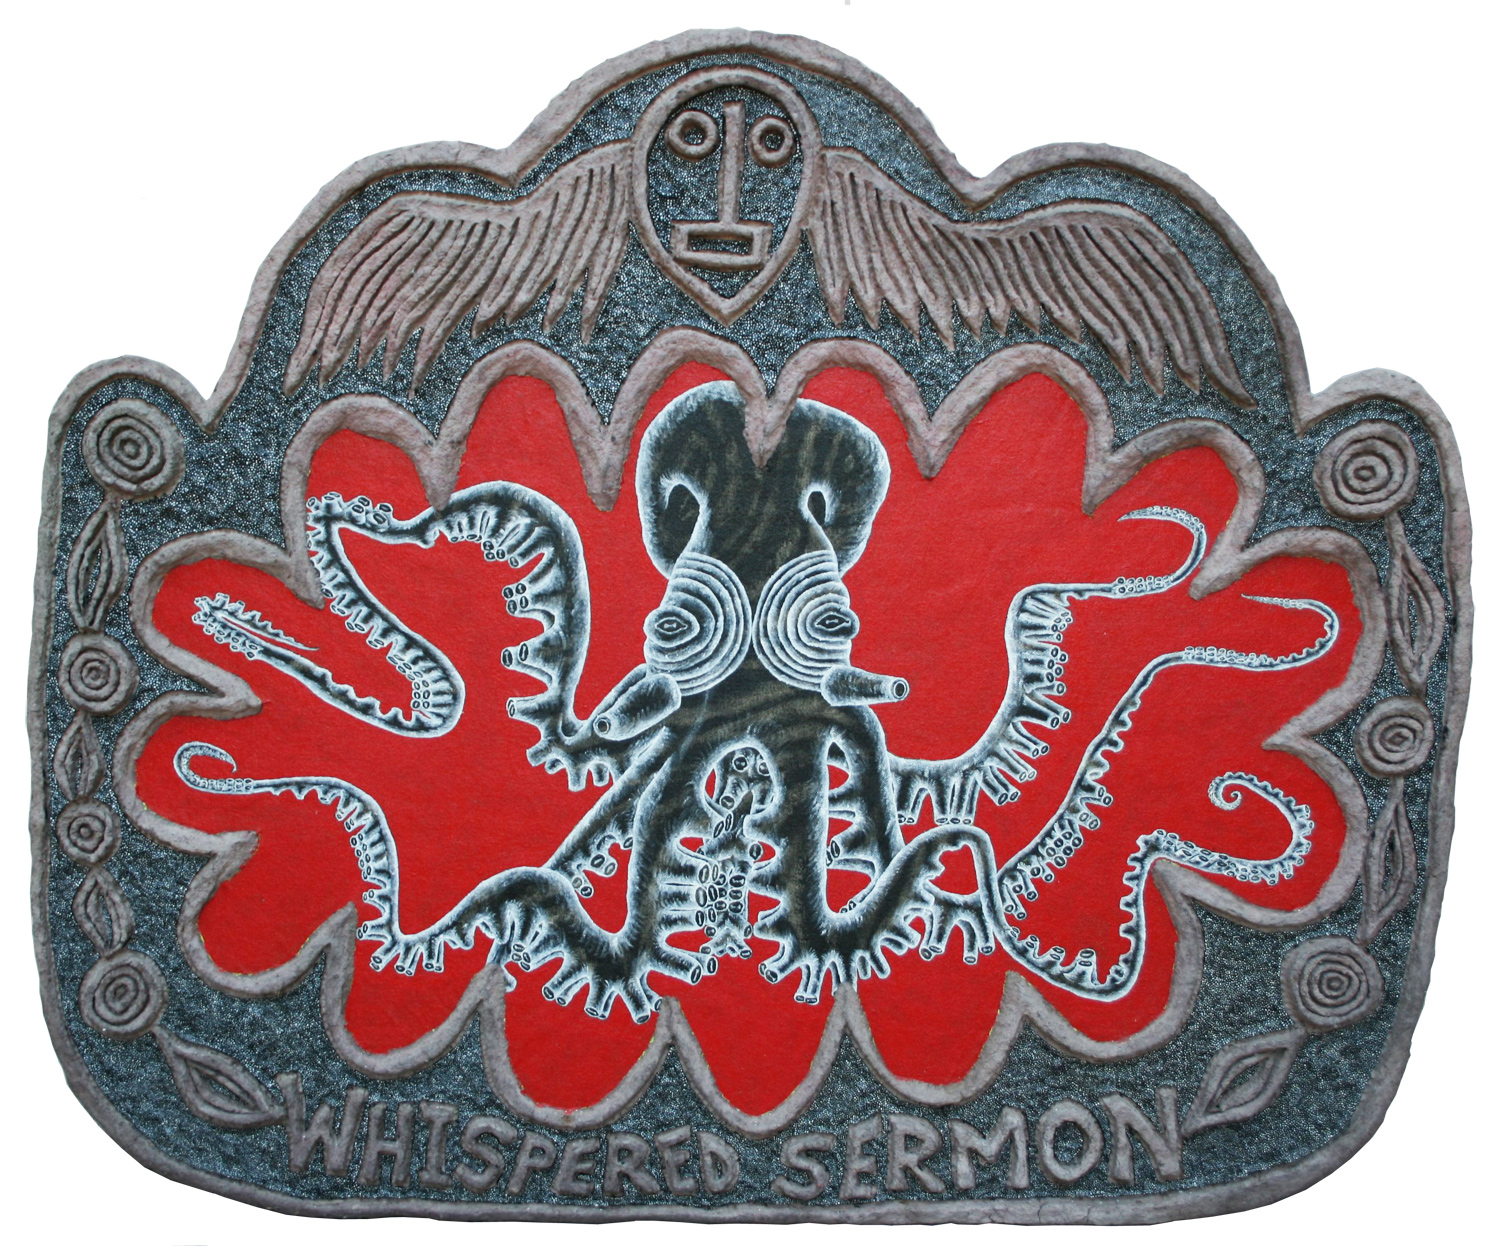 """'whispered sermon' ©1988-91, acrylic and celluclay on wood, 35"""" x 48""""."""